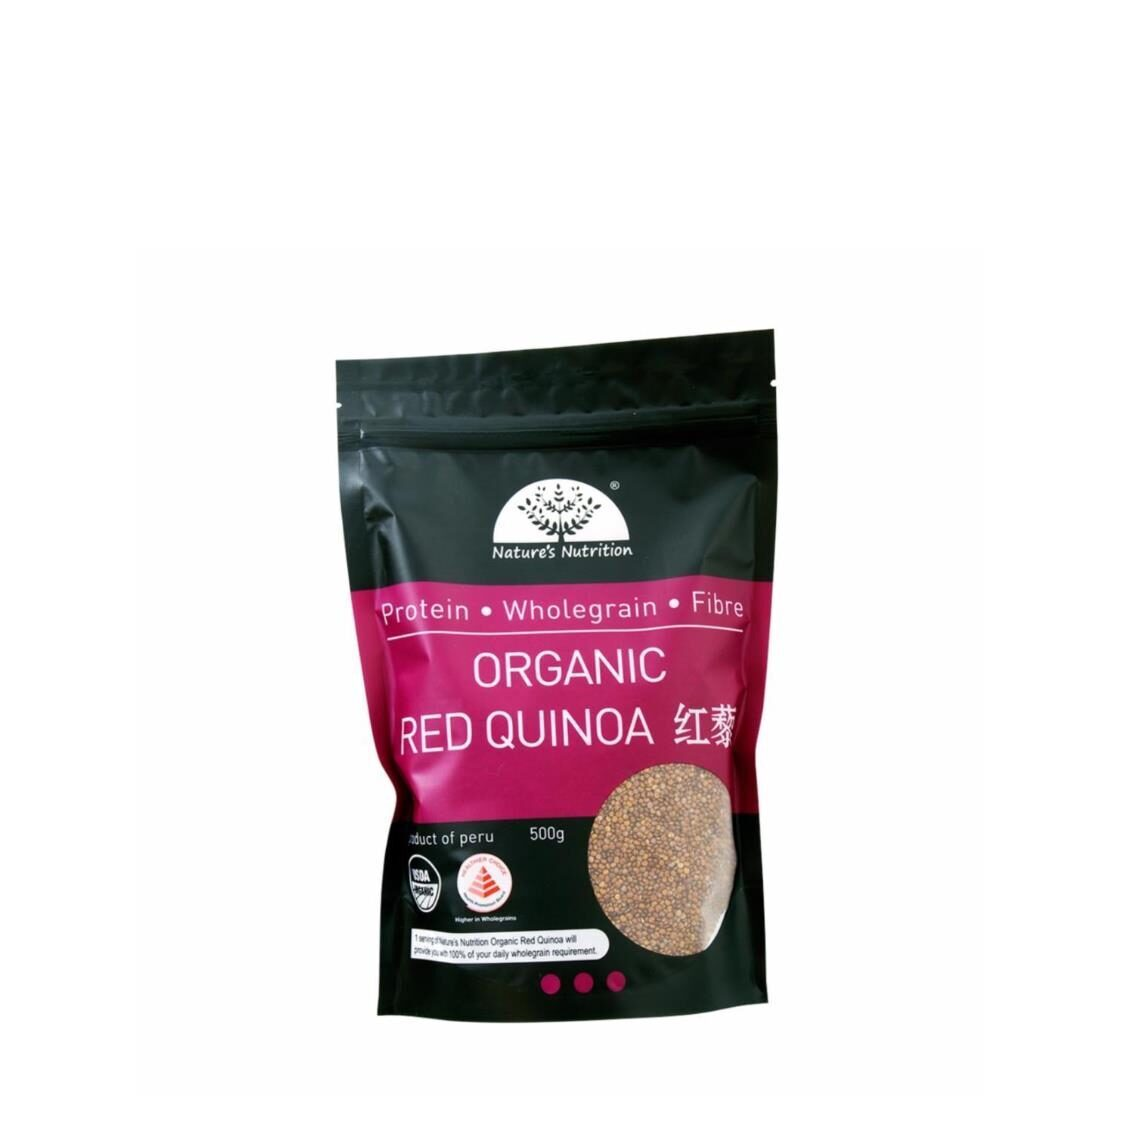 Natures Nutrition Organic Red Quinoa 500g